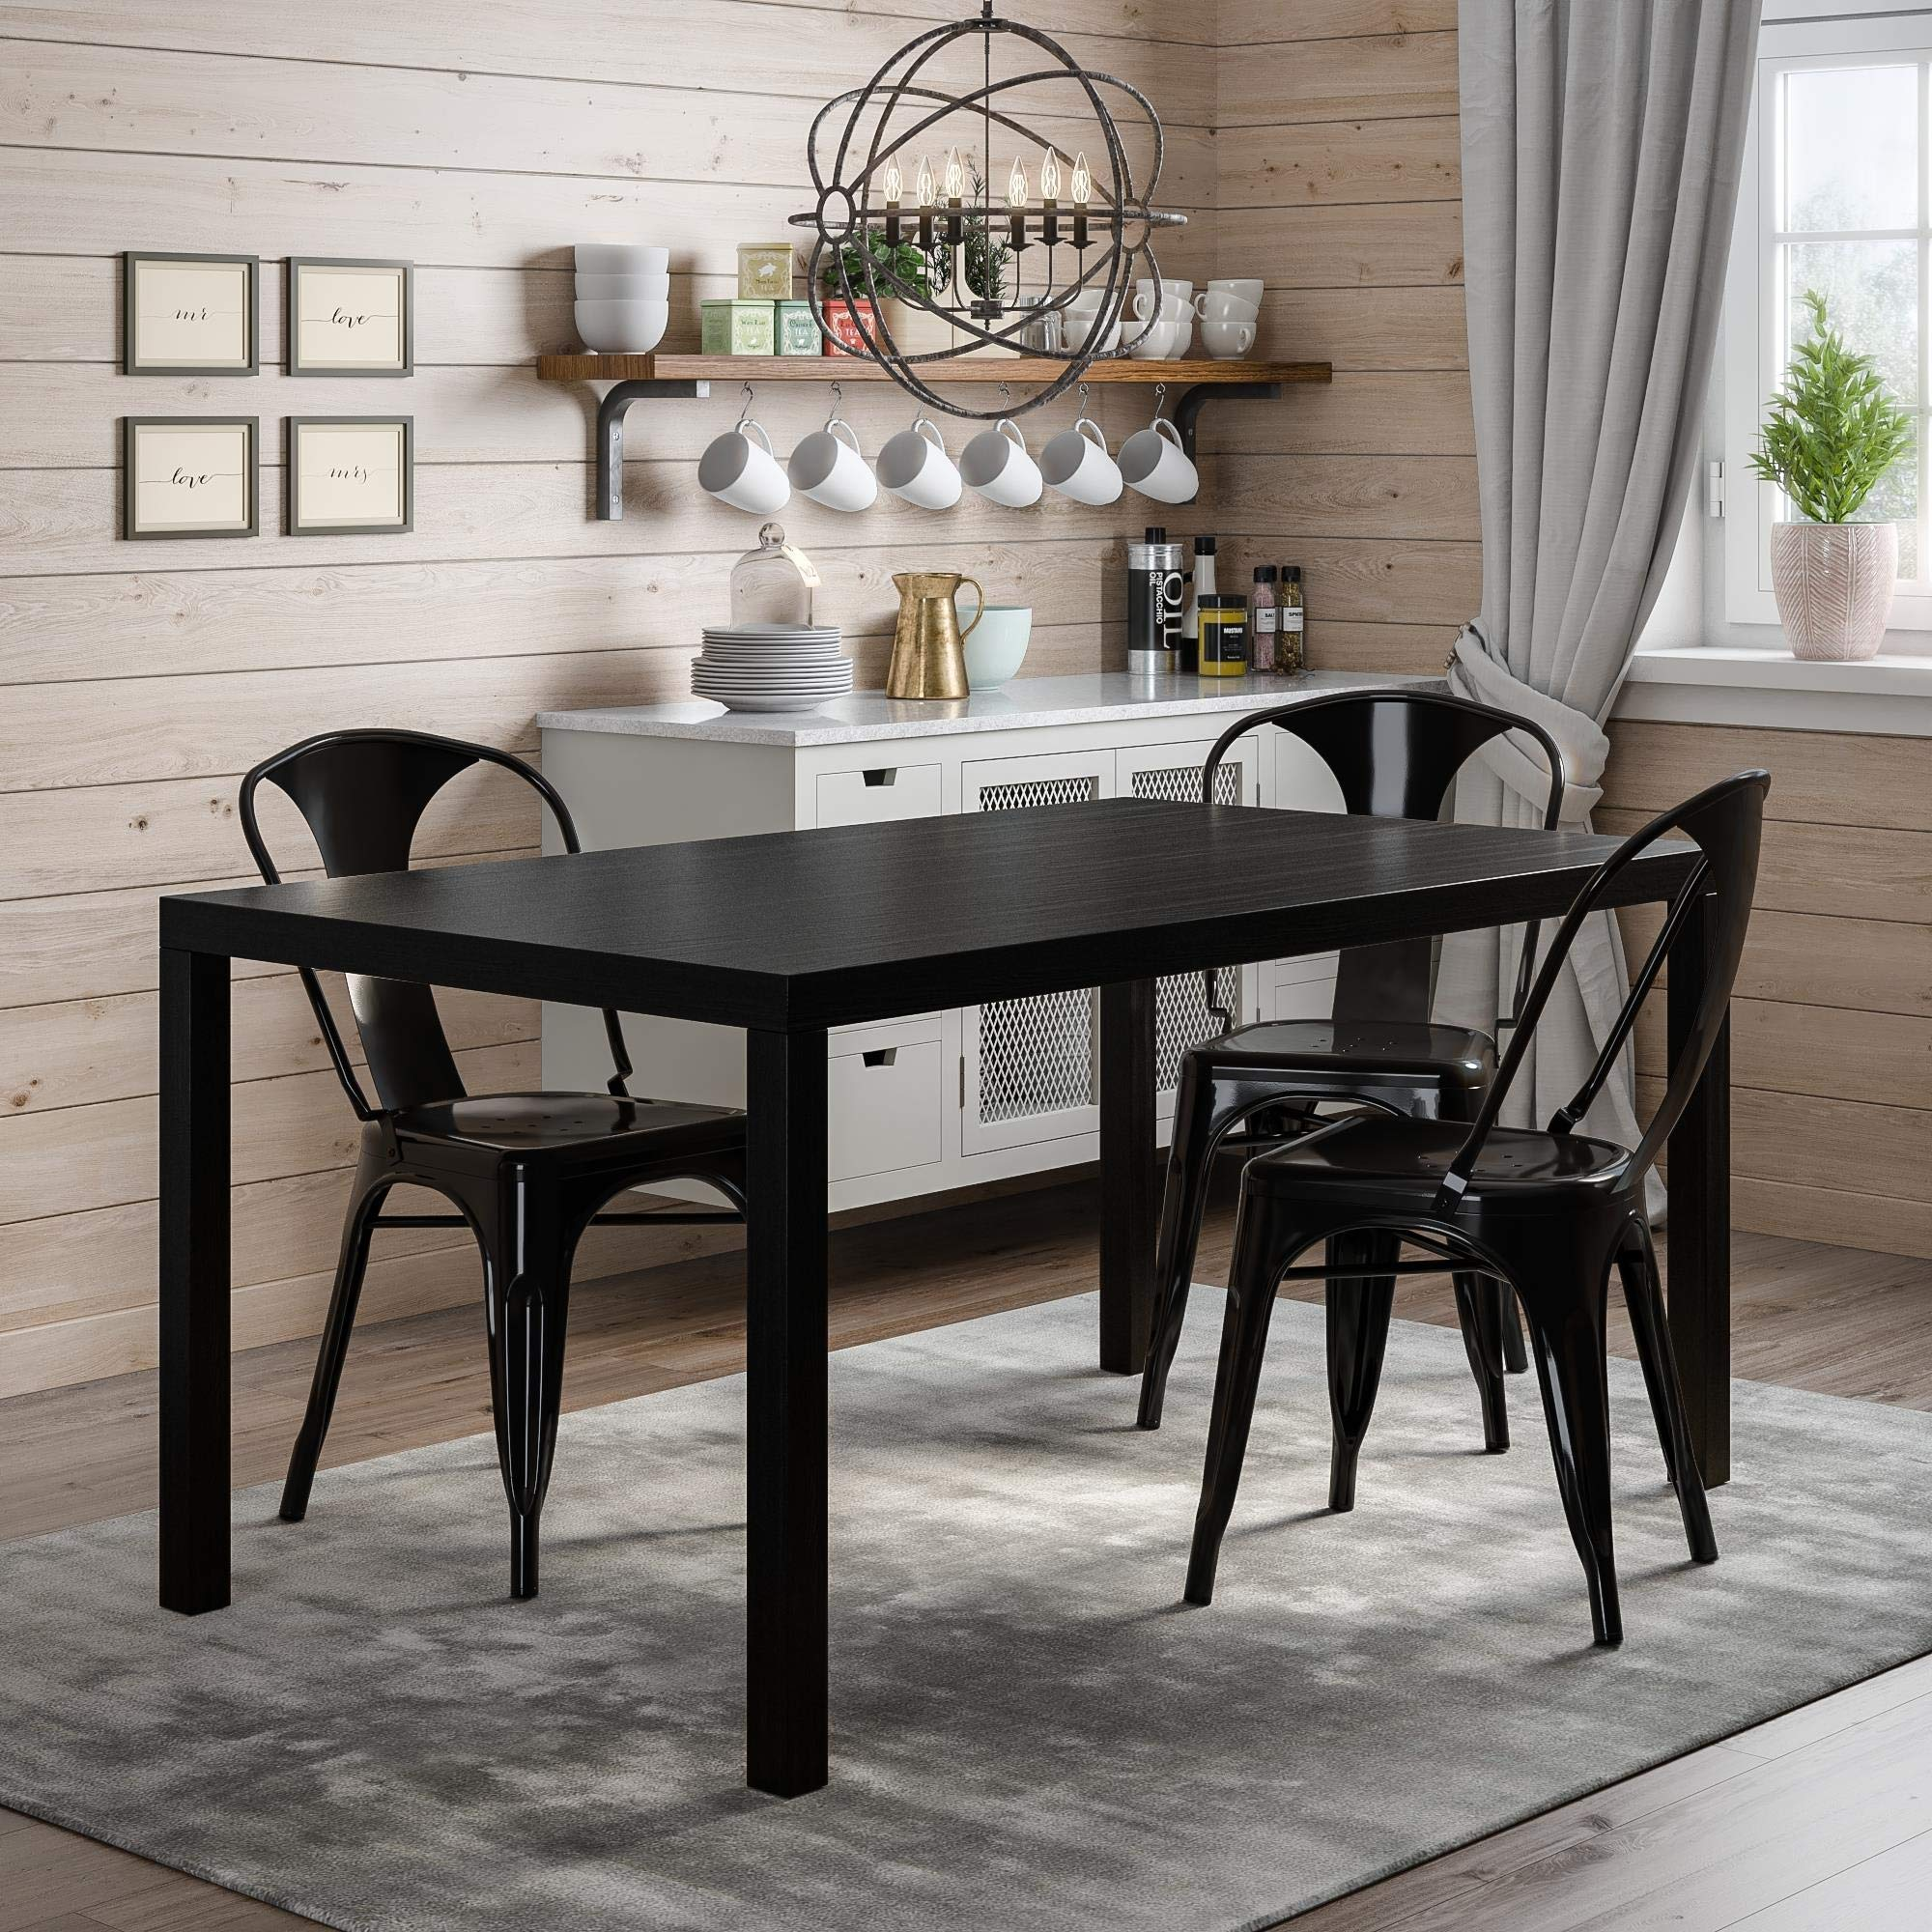 Novogratz Memphis Rectangular Dining Table, Black